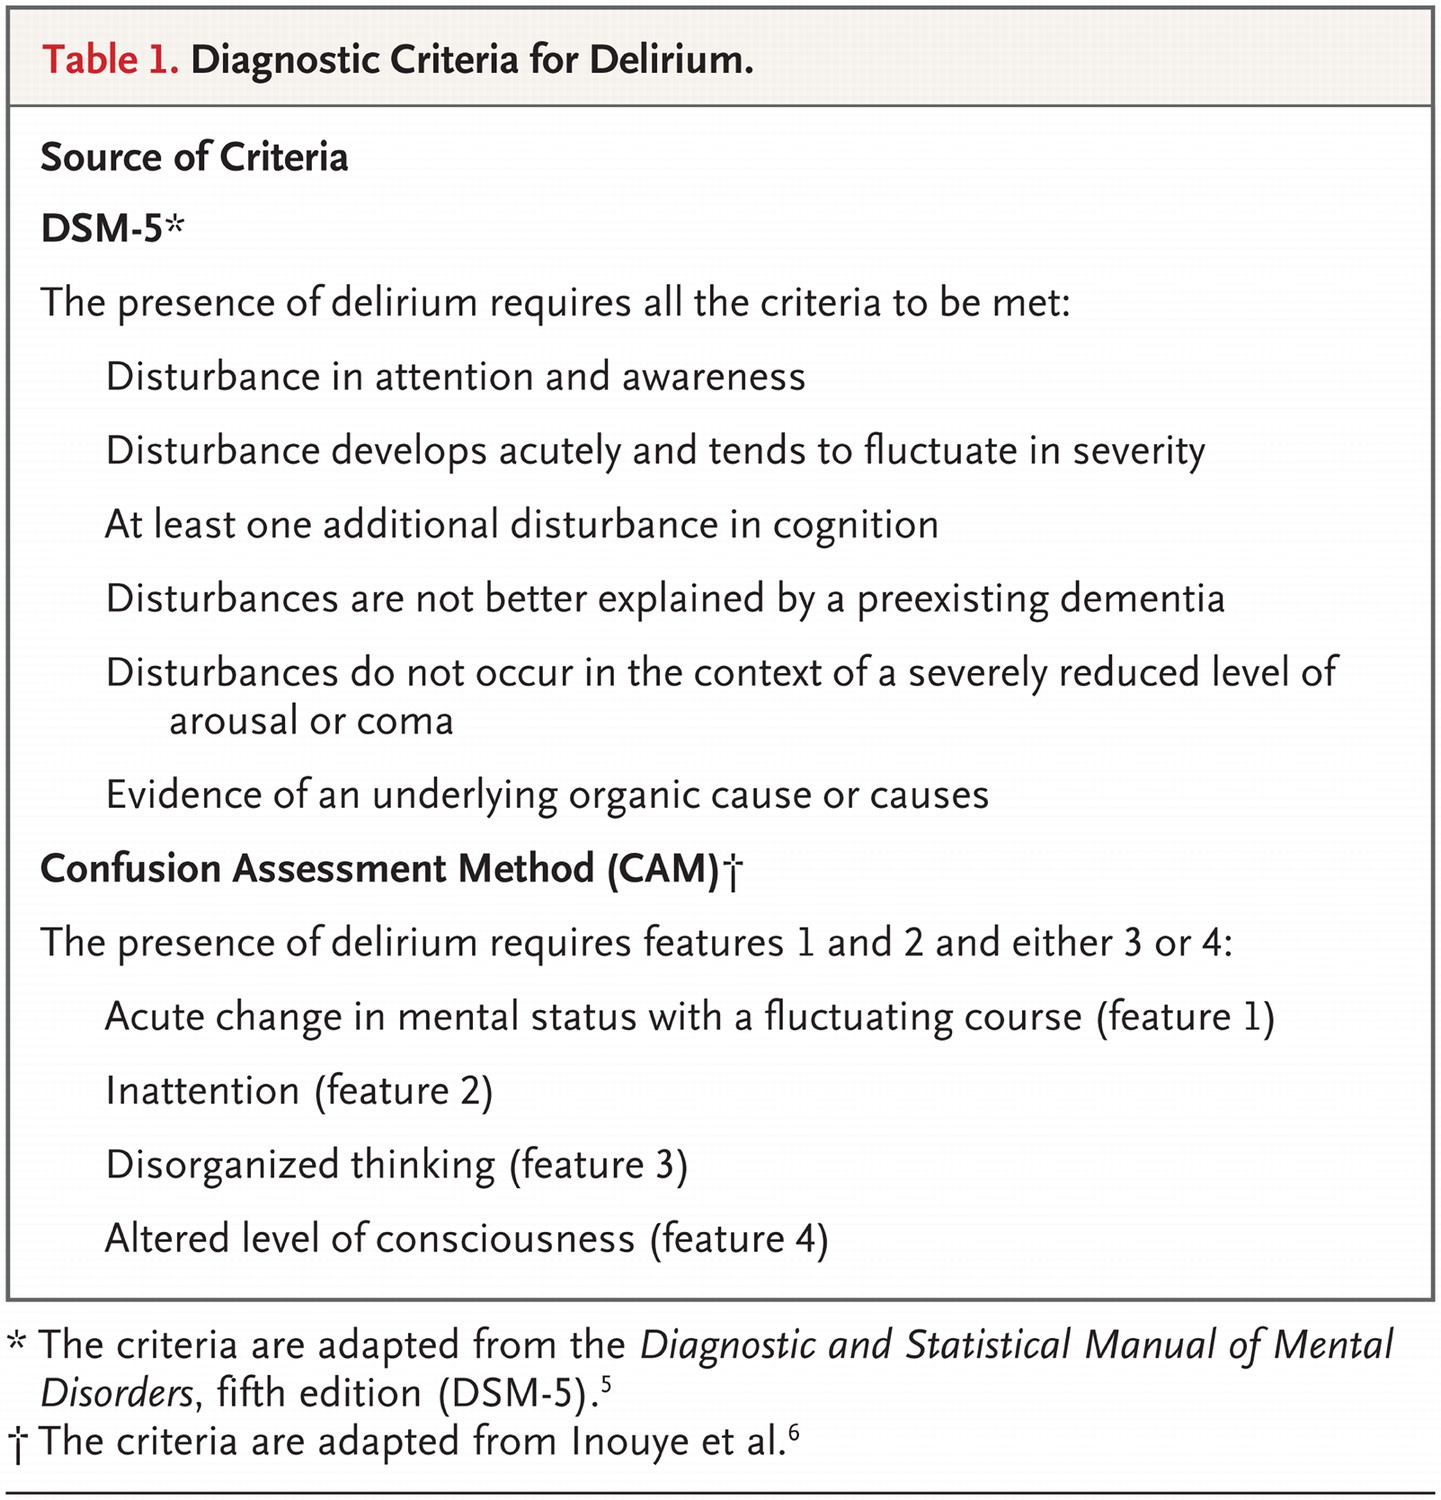 Delirium or not delirium That is the question Time of day Sleep value for 1 hour